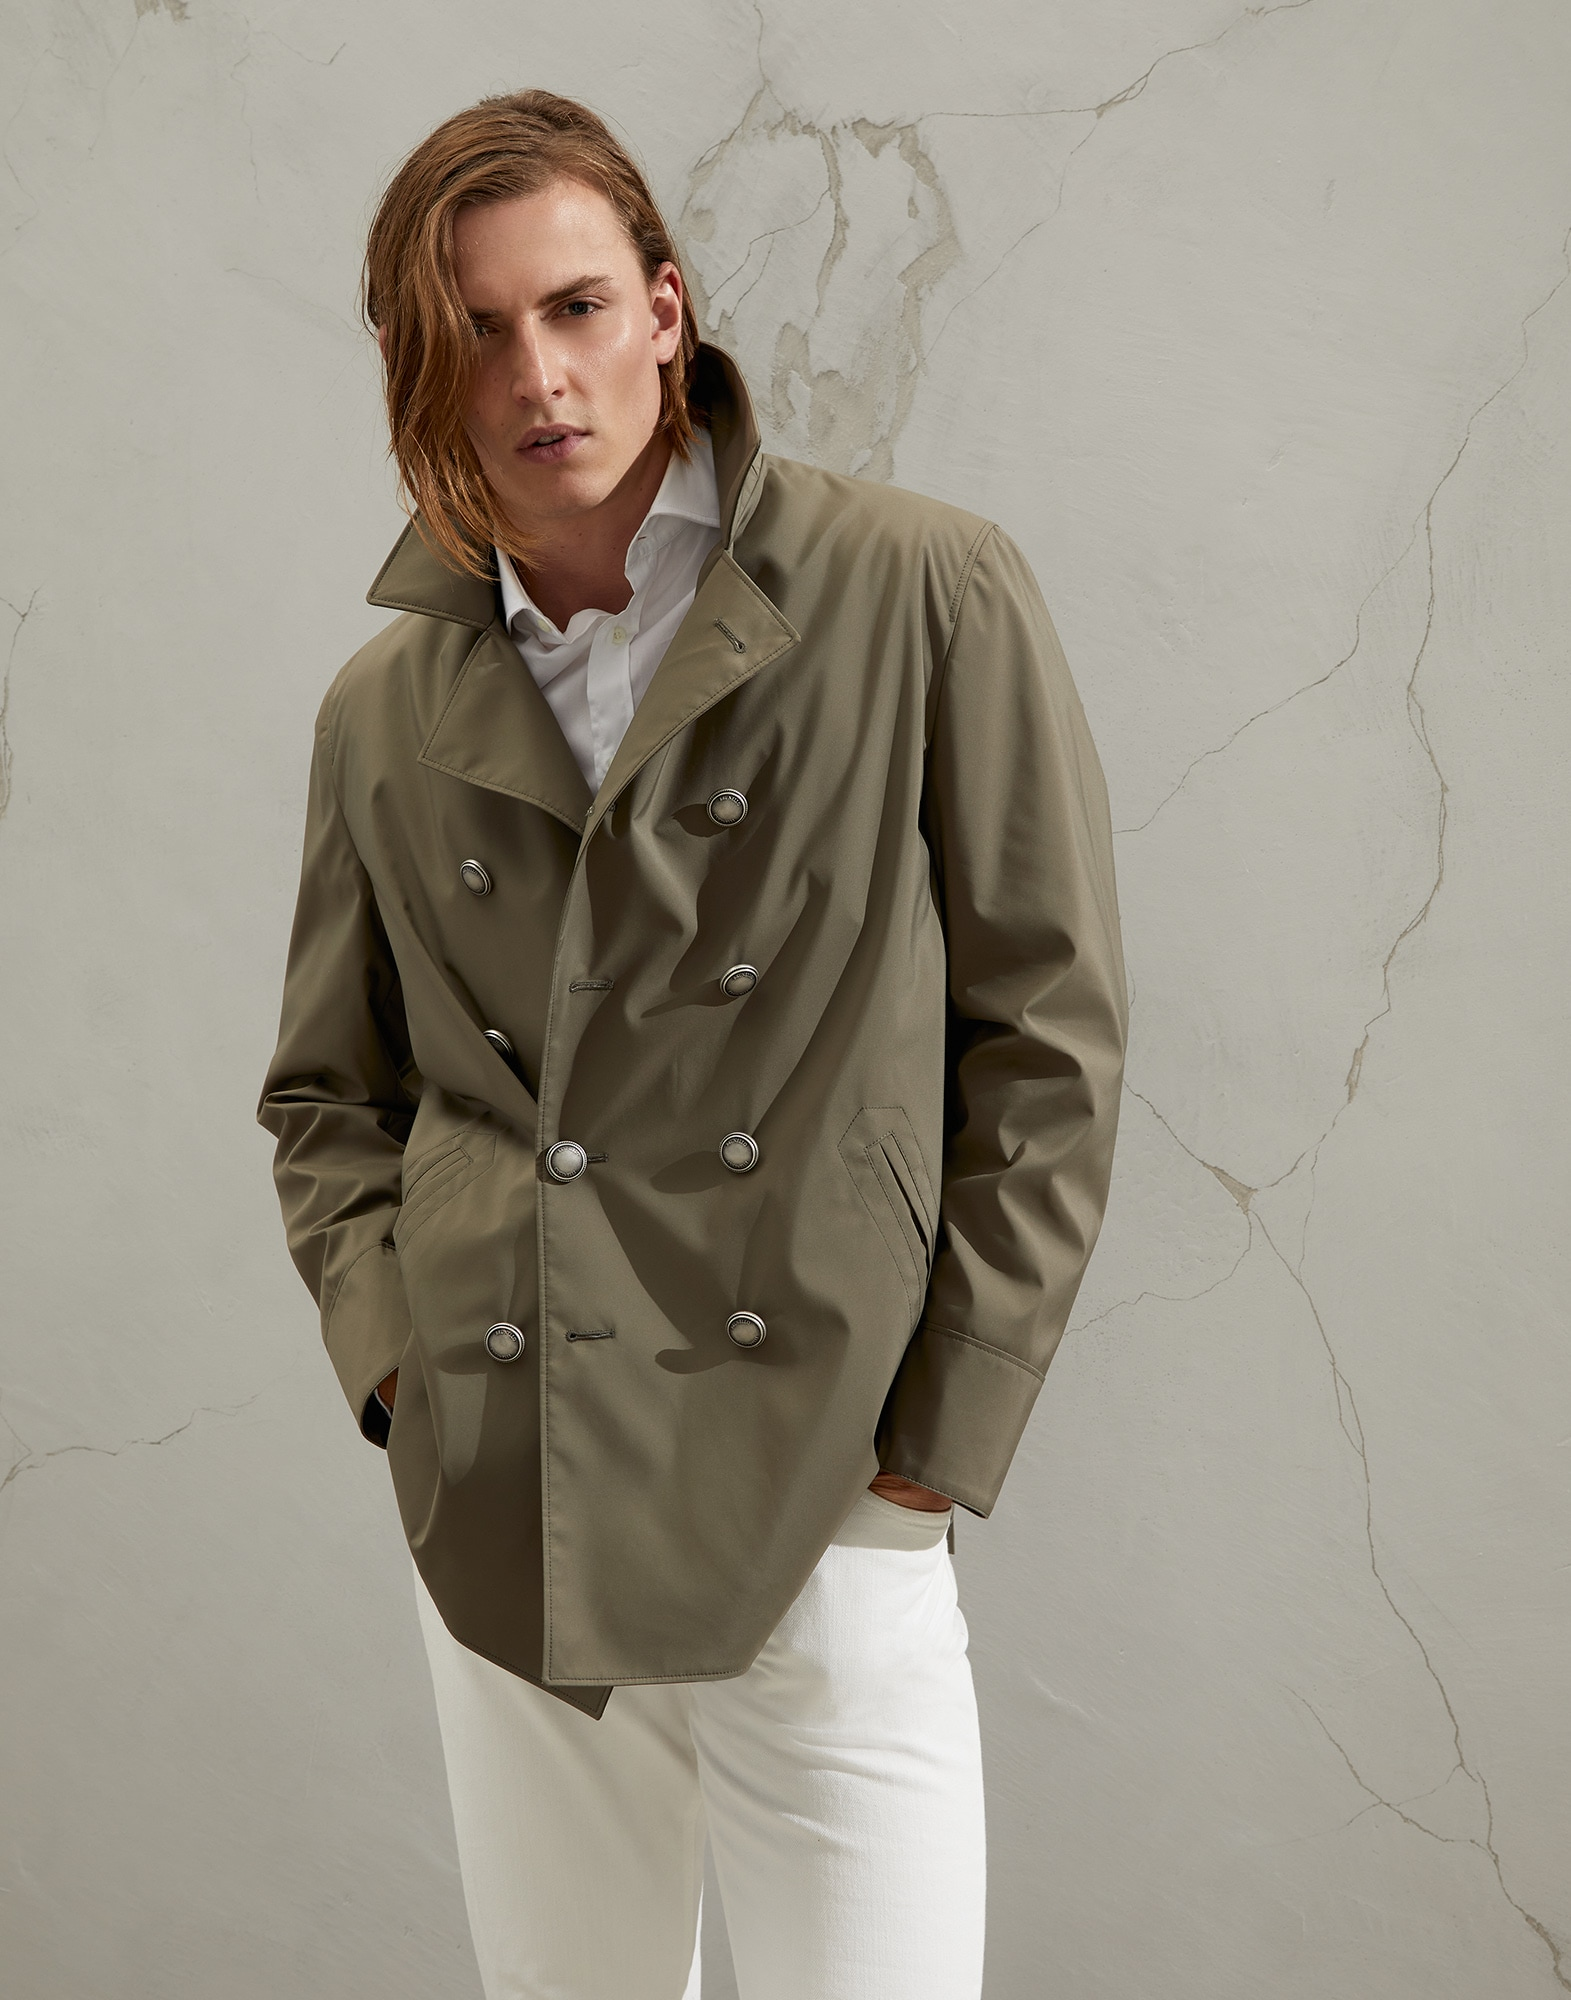 Brunello Cucinelli Water-resistant fit nylon fabric, navy style jacket with metal buttons